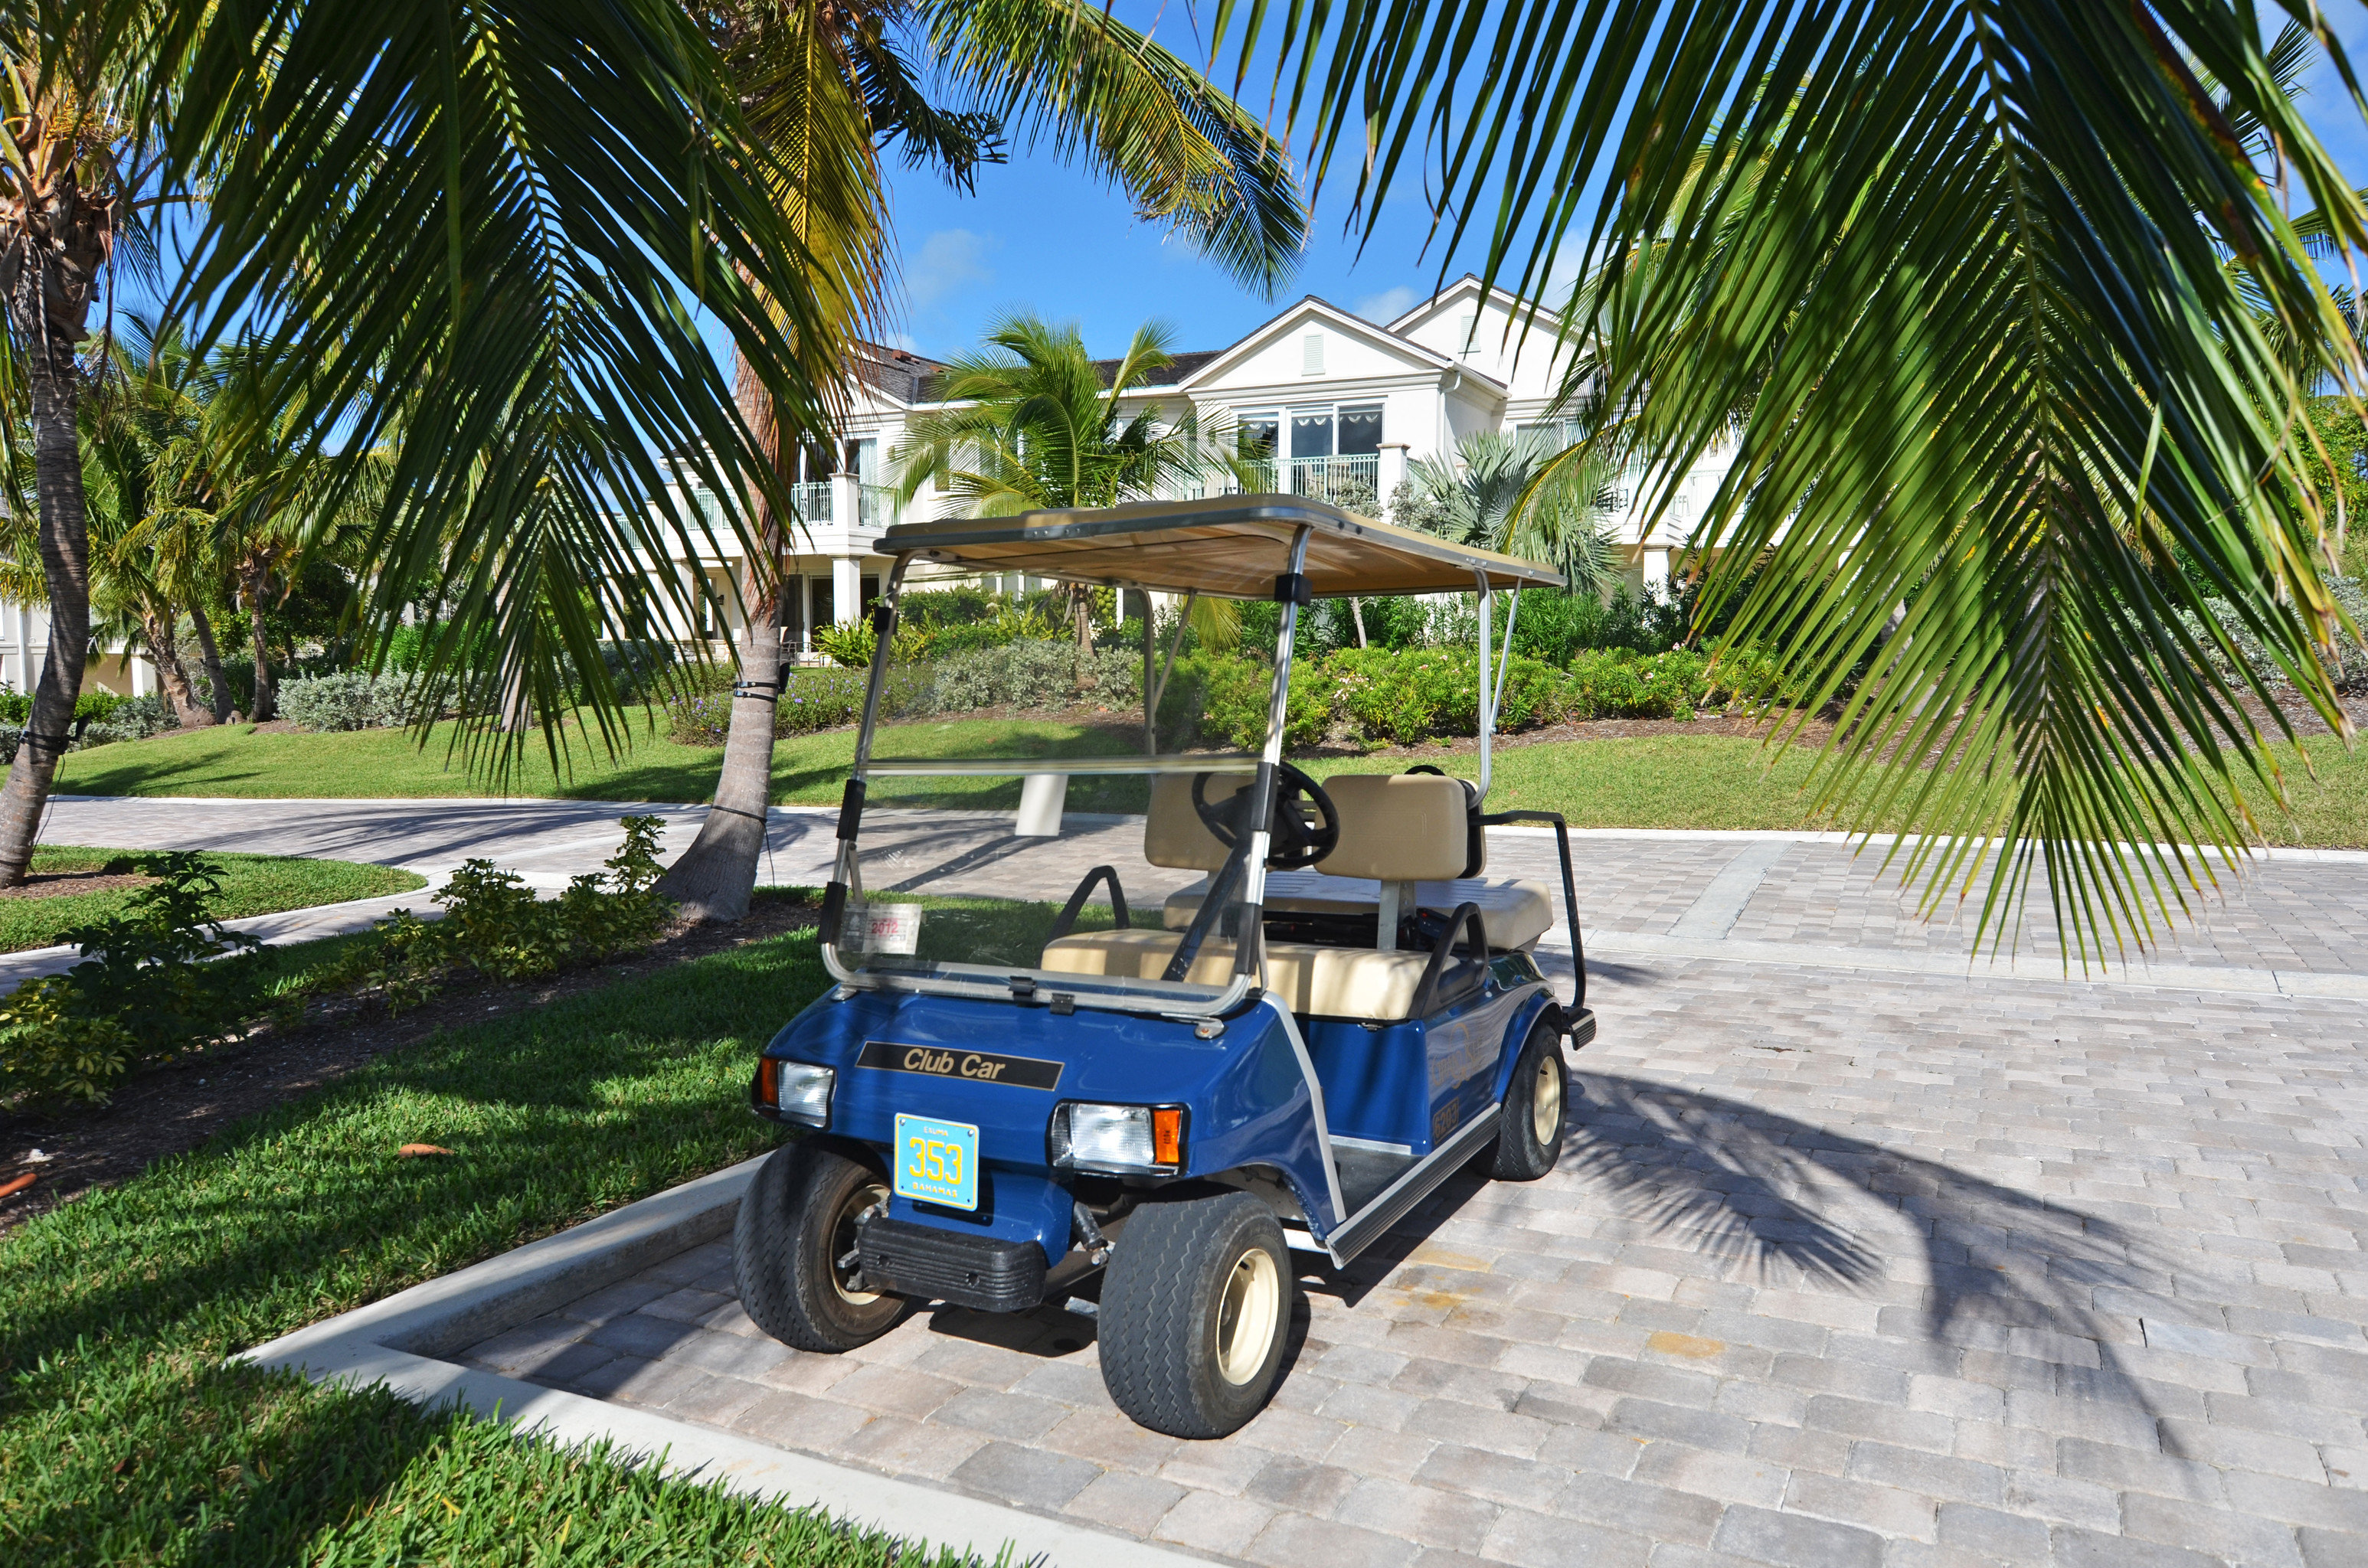 Grounds Resort tree palm vehicle blue arecales golfcart